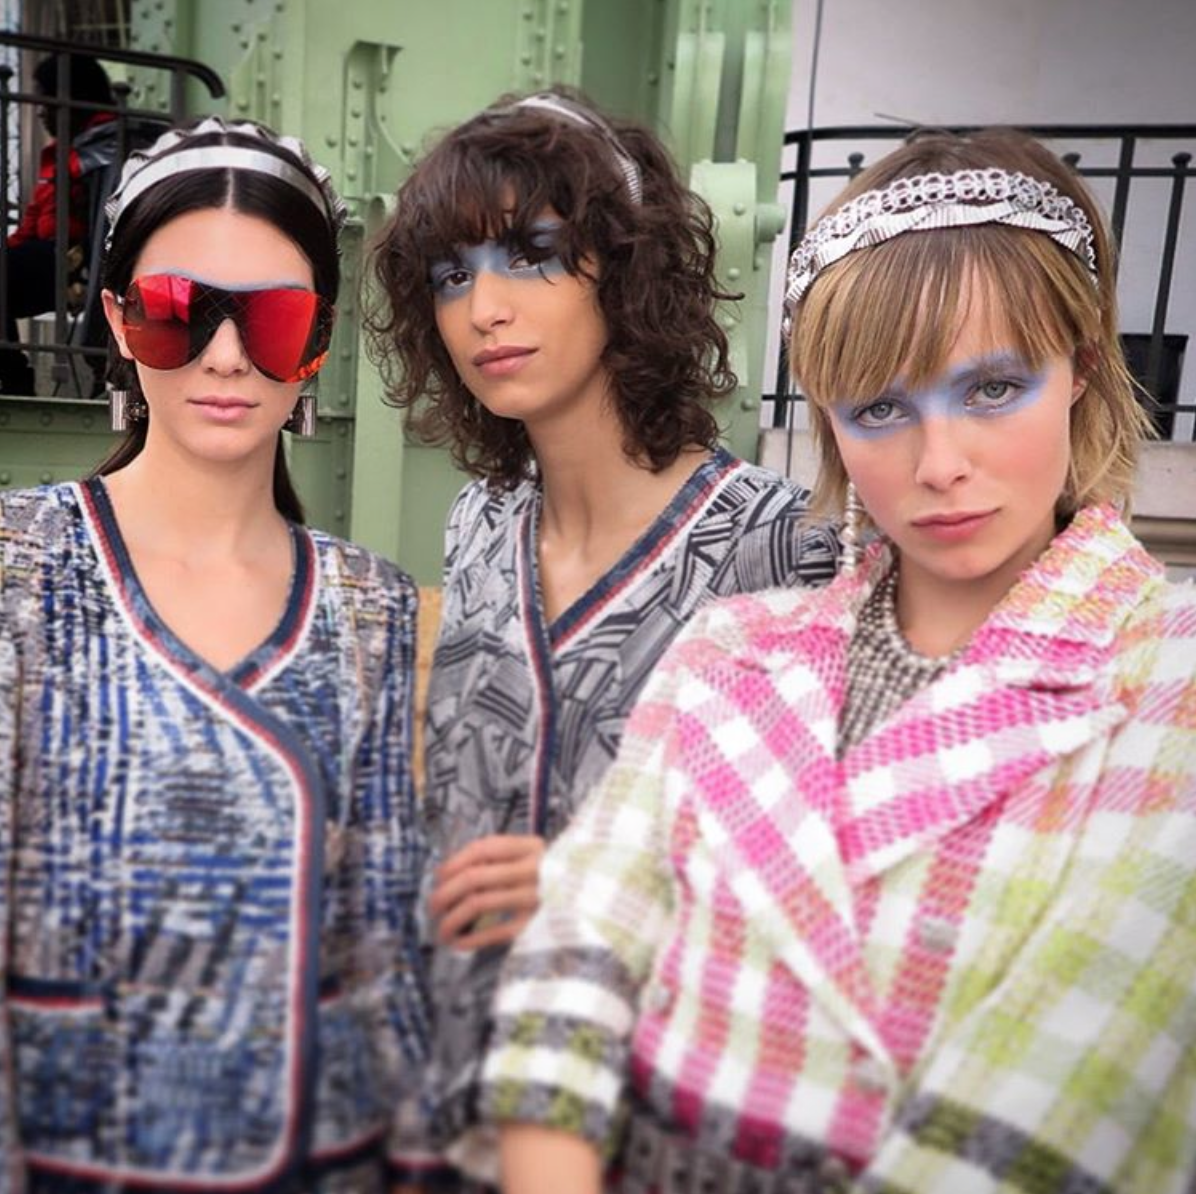 October 6, 2015- Kendall Jenner, Mica Arganaraz, and Edie Campbell backstage at Chanel